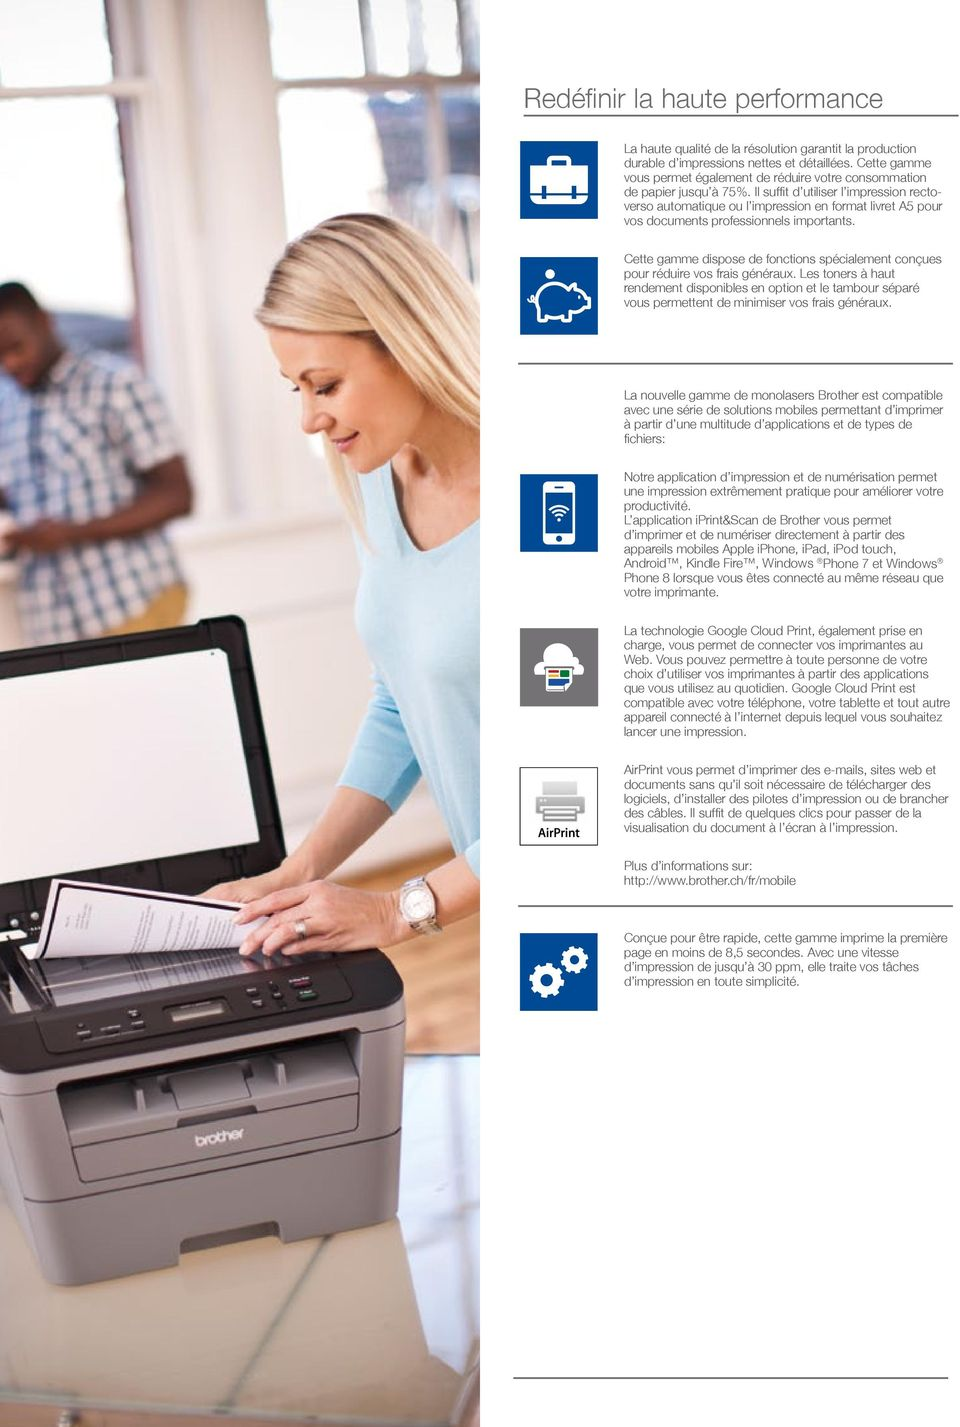 Il suffit d utiliser l impression rectoverso automatique ou l impression en format livret A5 pour vos documents professionnels importants.